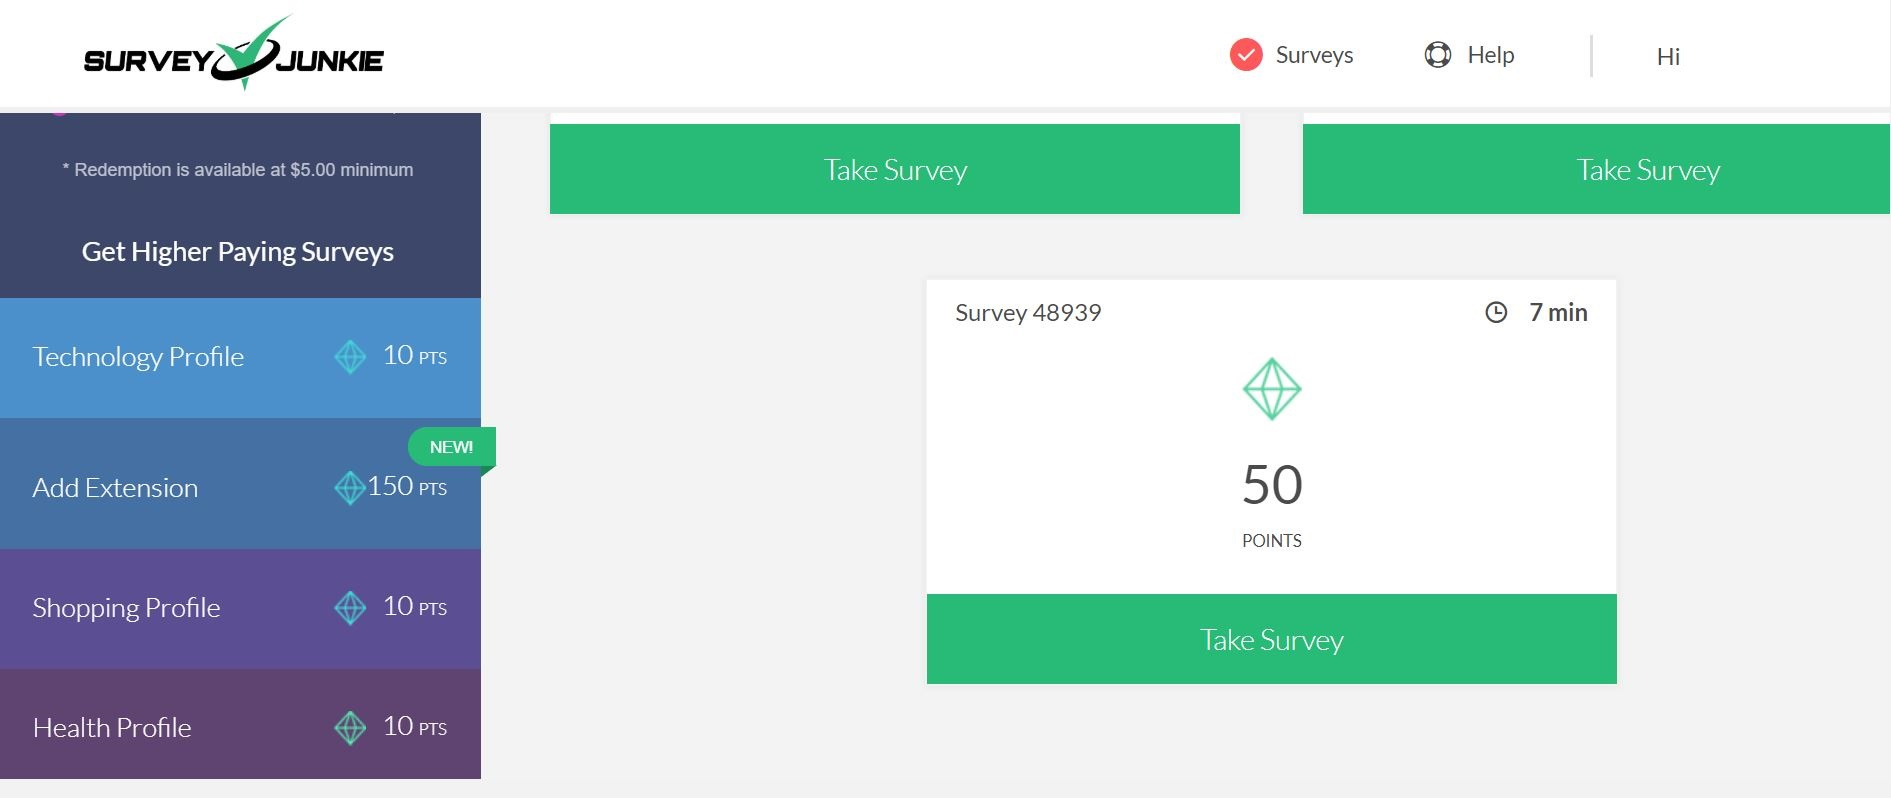 survey junkie dashboard